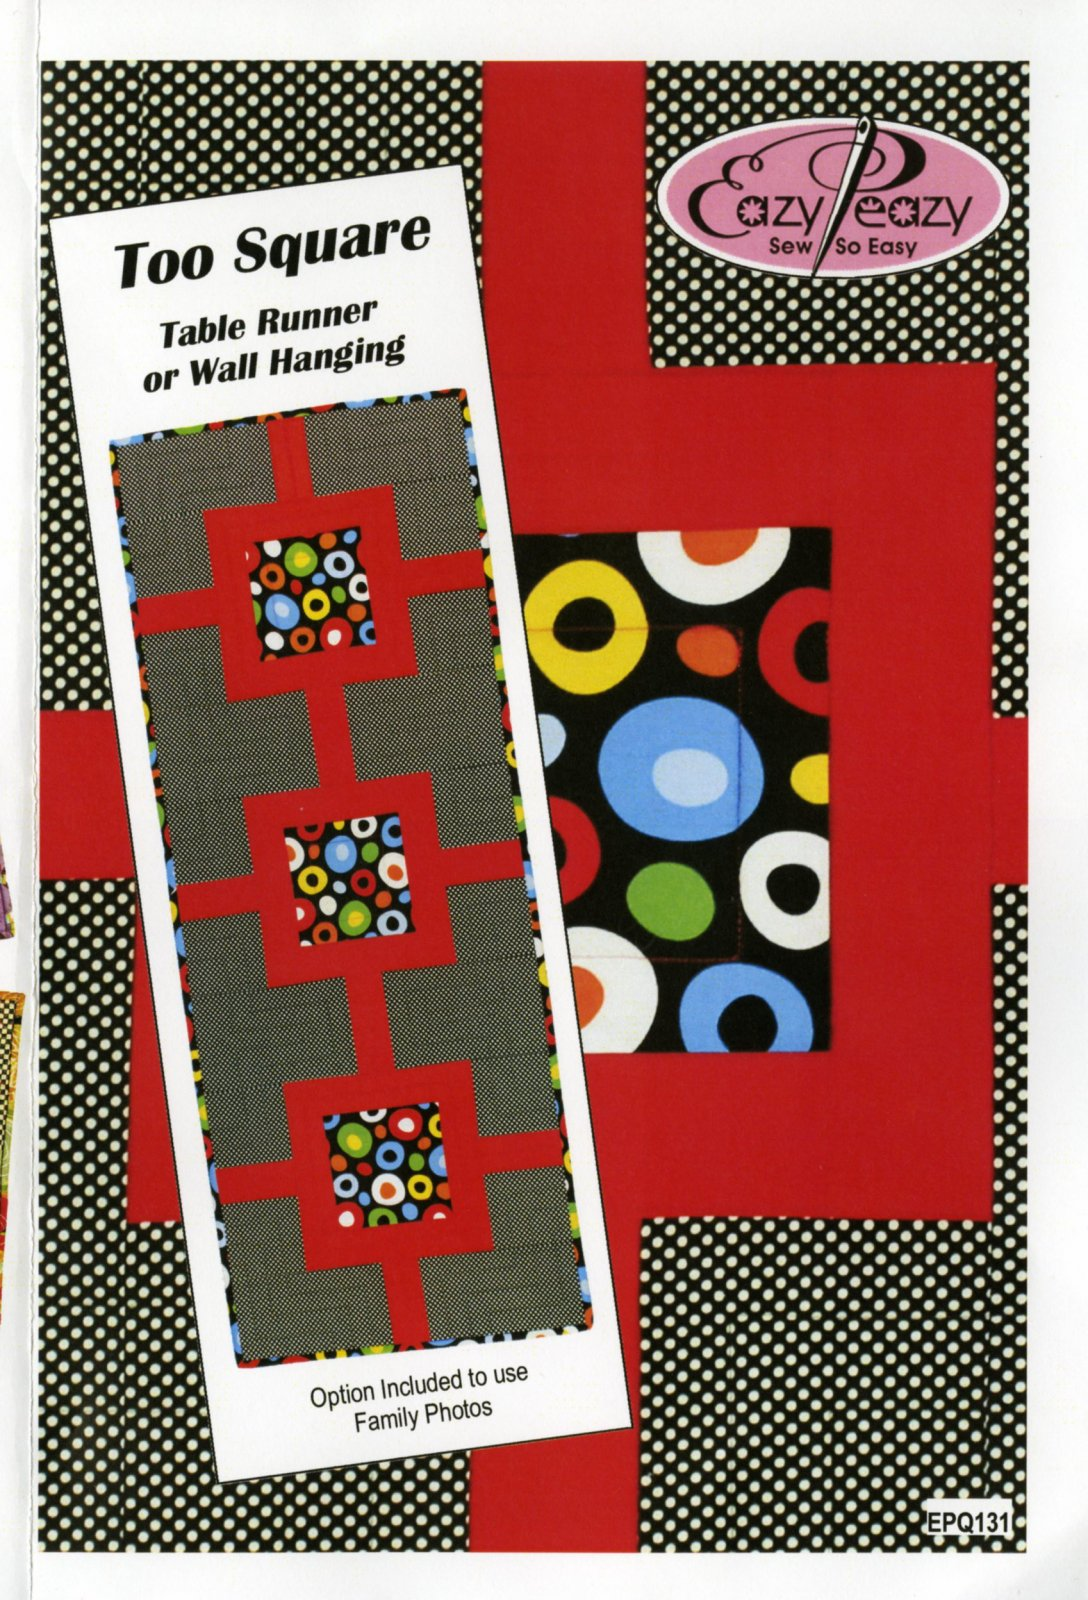 Too Square Table Runner or Wall Hanging